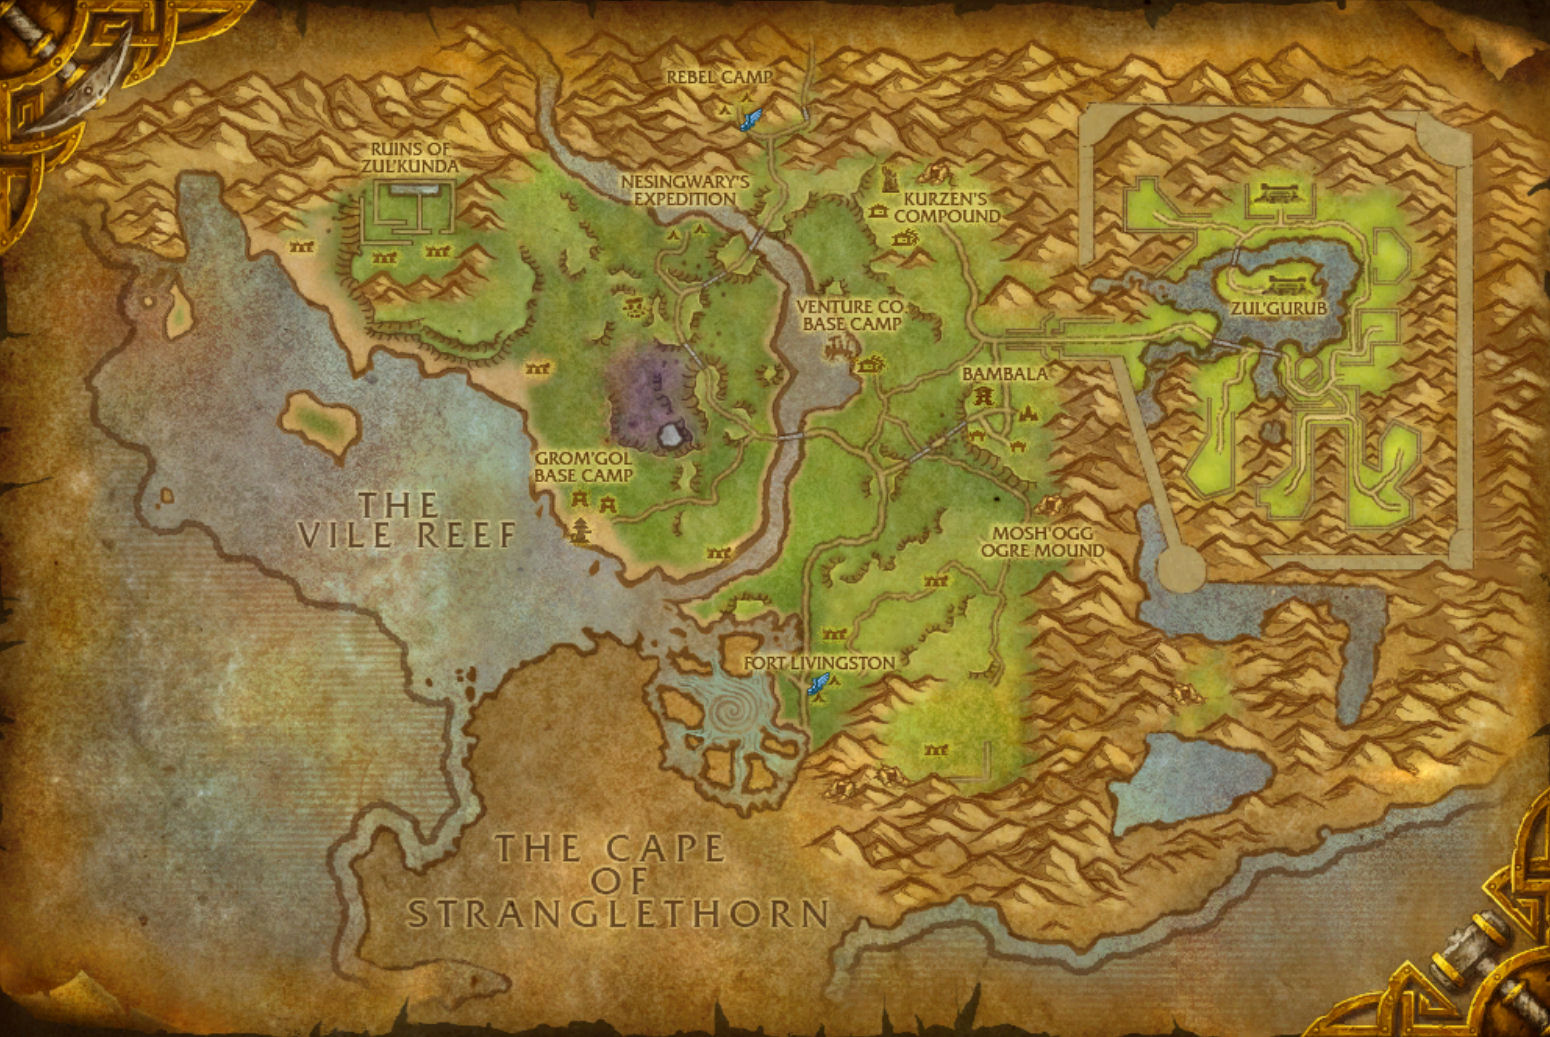 The Cape of Stranglethorn | The Ancient Gaming Noob